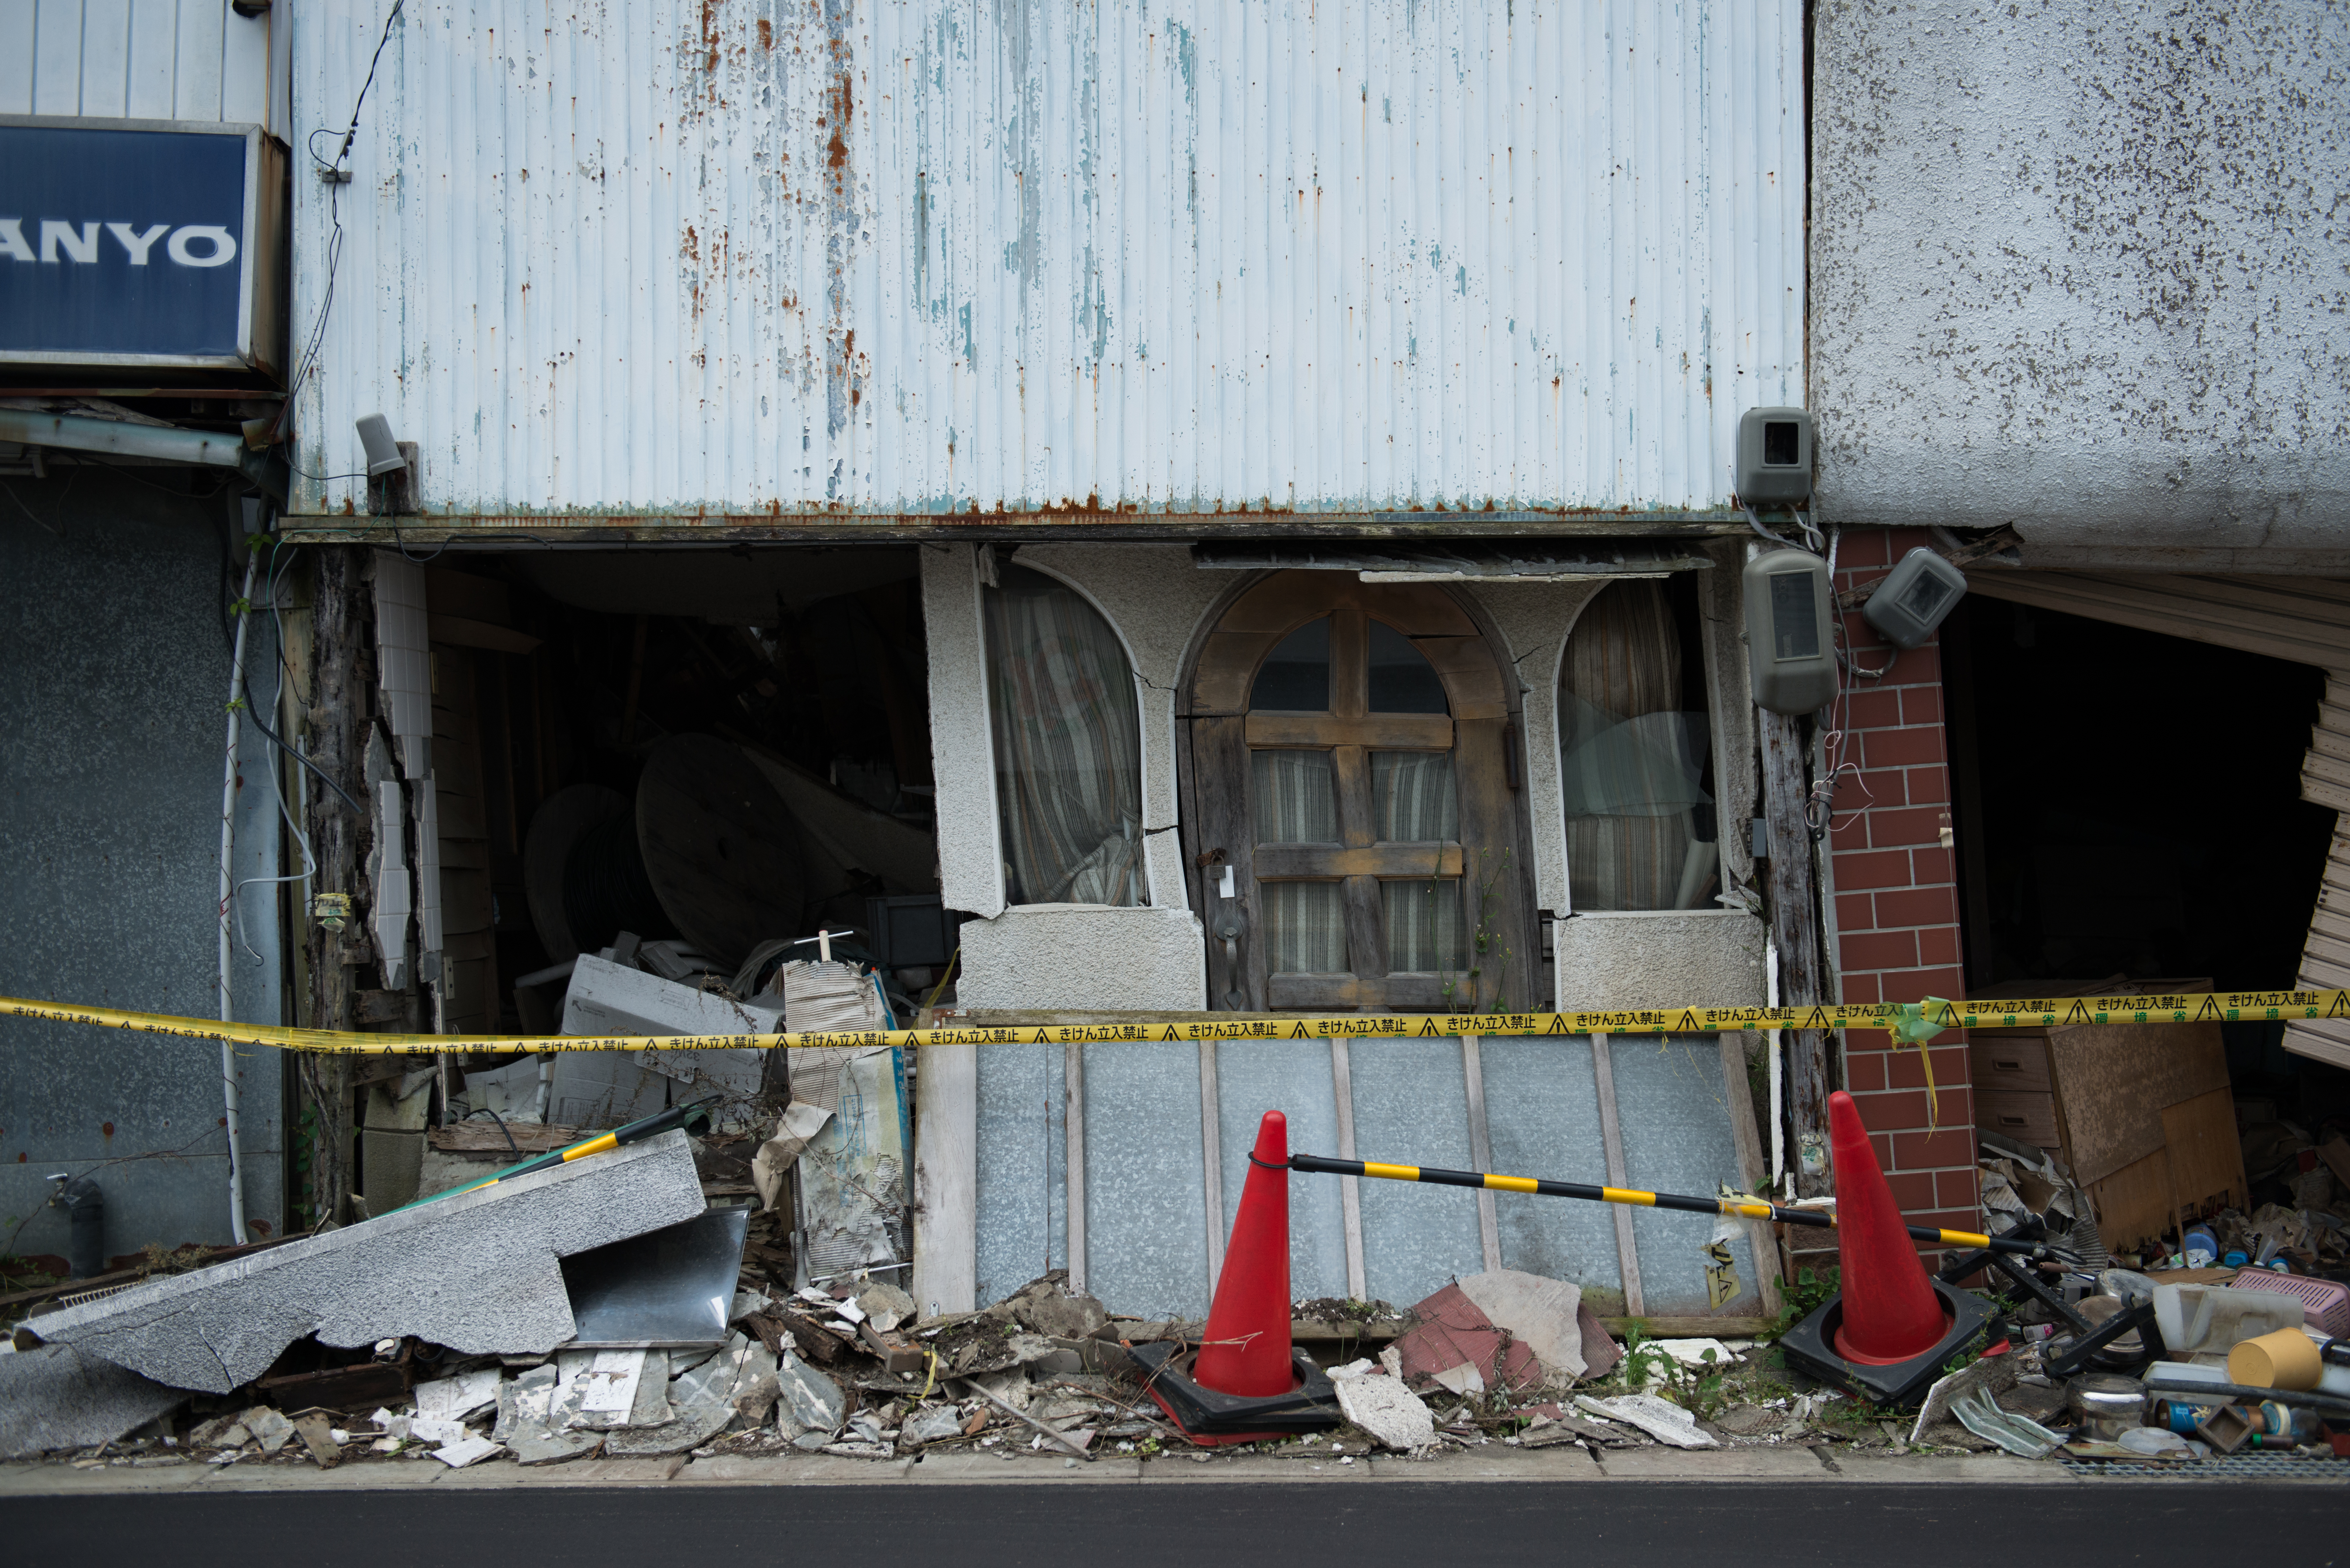 A caution tape is seen in front of a store damaged by the 2011 earthquake and tsunami in Namie, Fukushima.